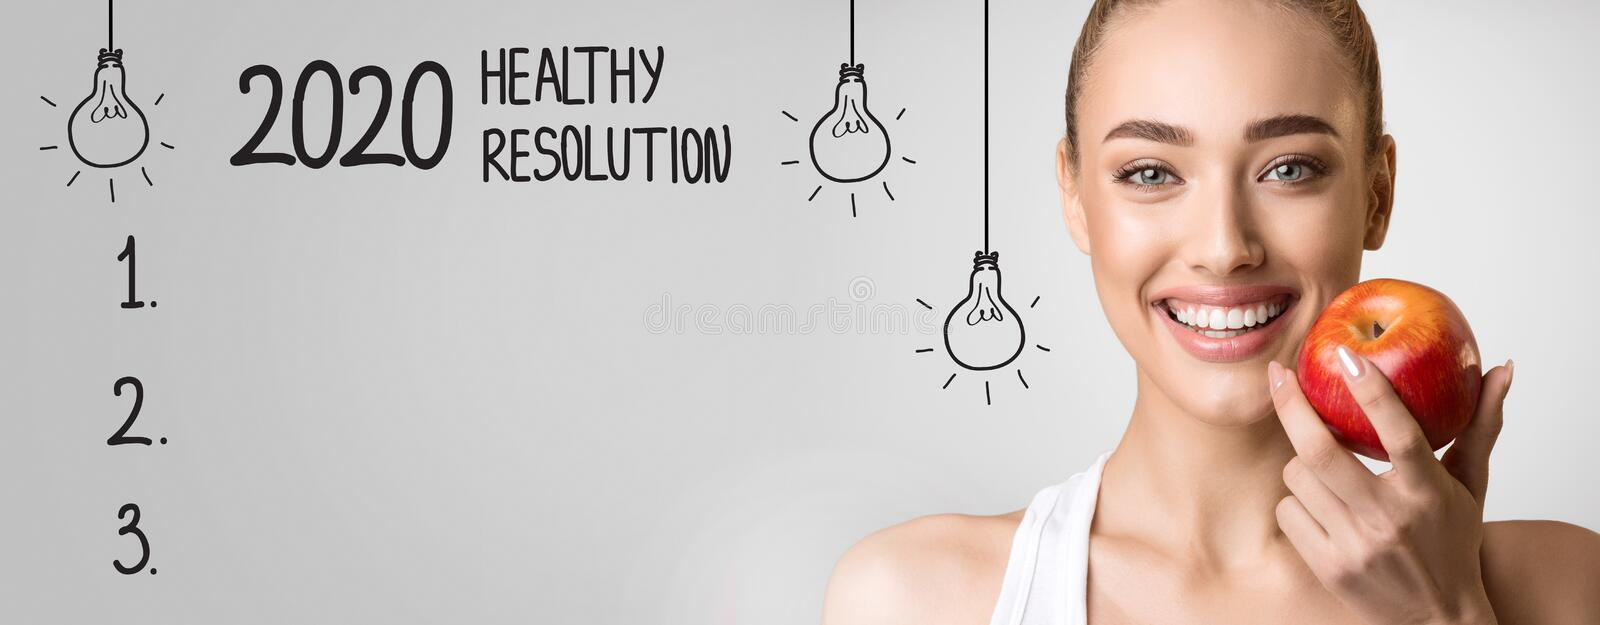 2020 Healthy Resolution with blank checklist and happy woman royalty free stock photo